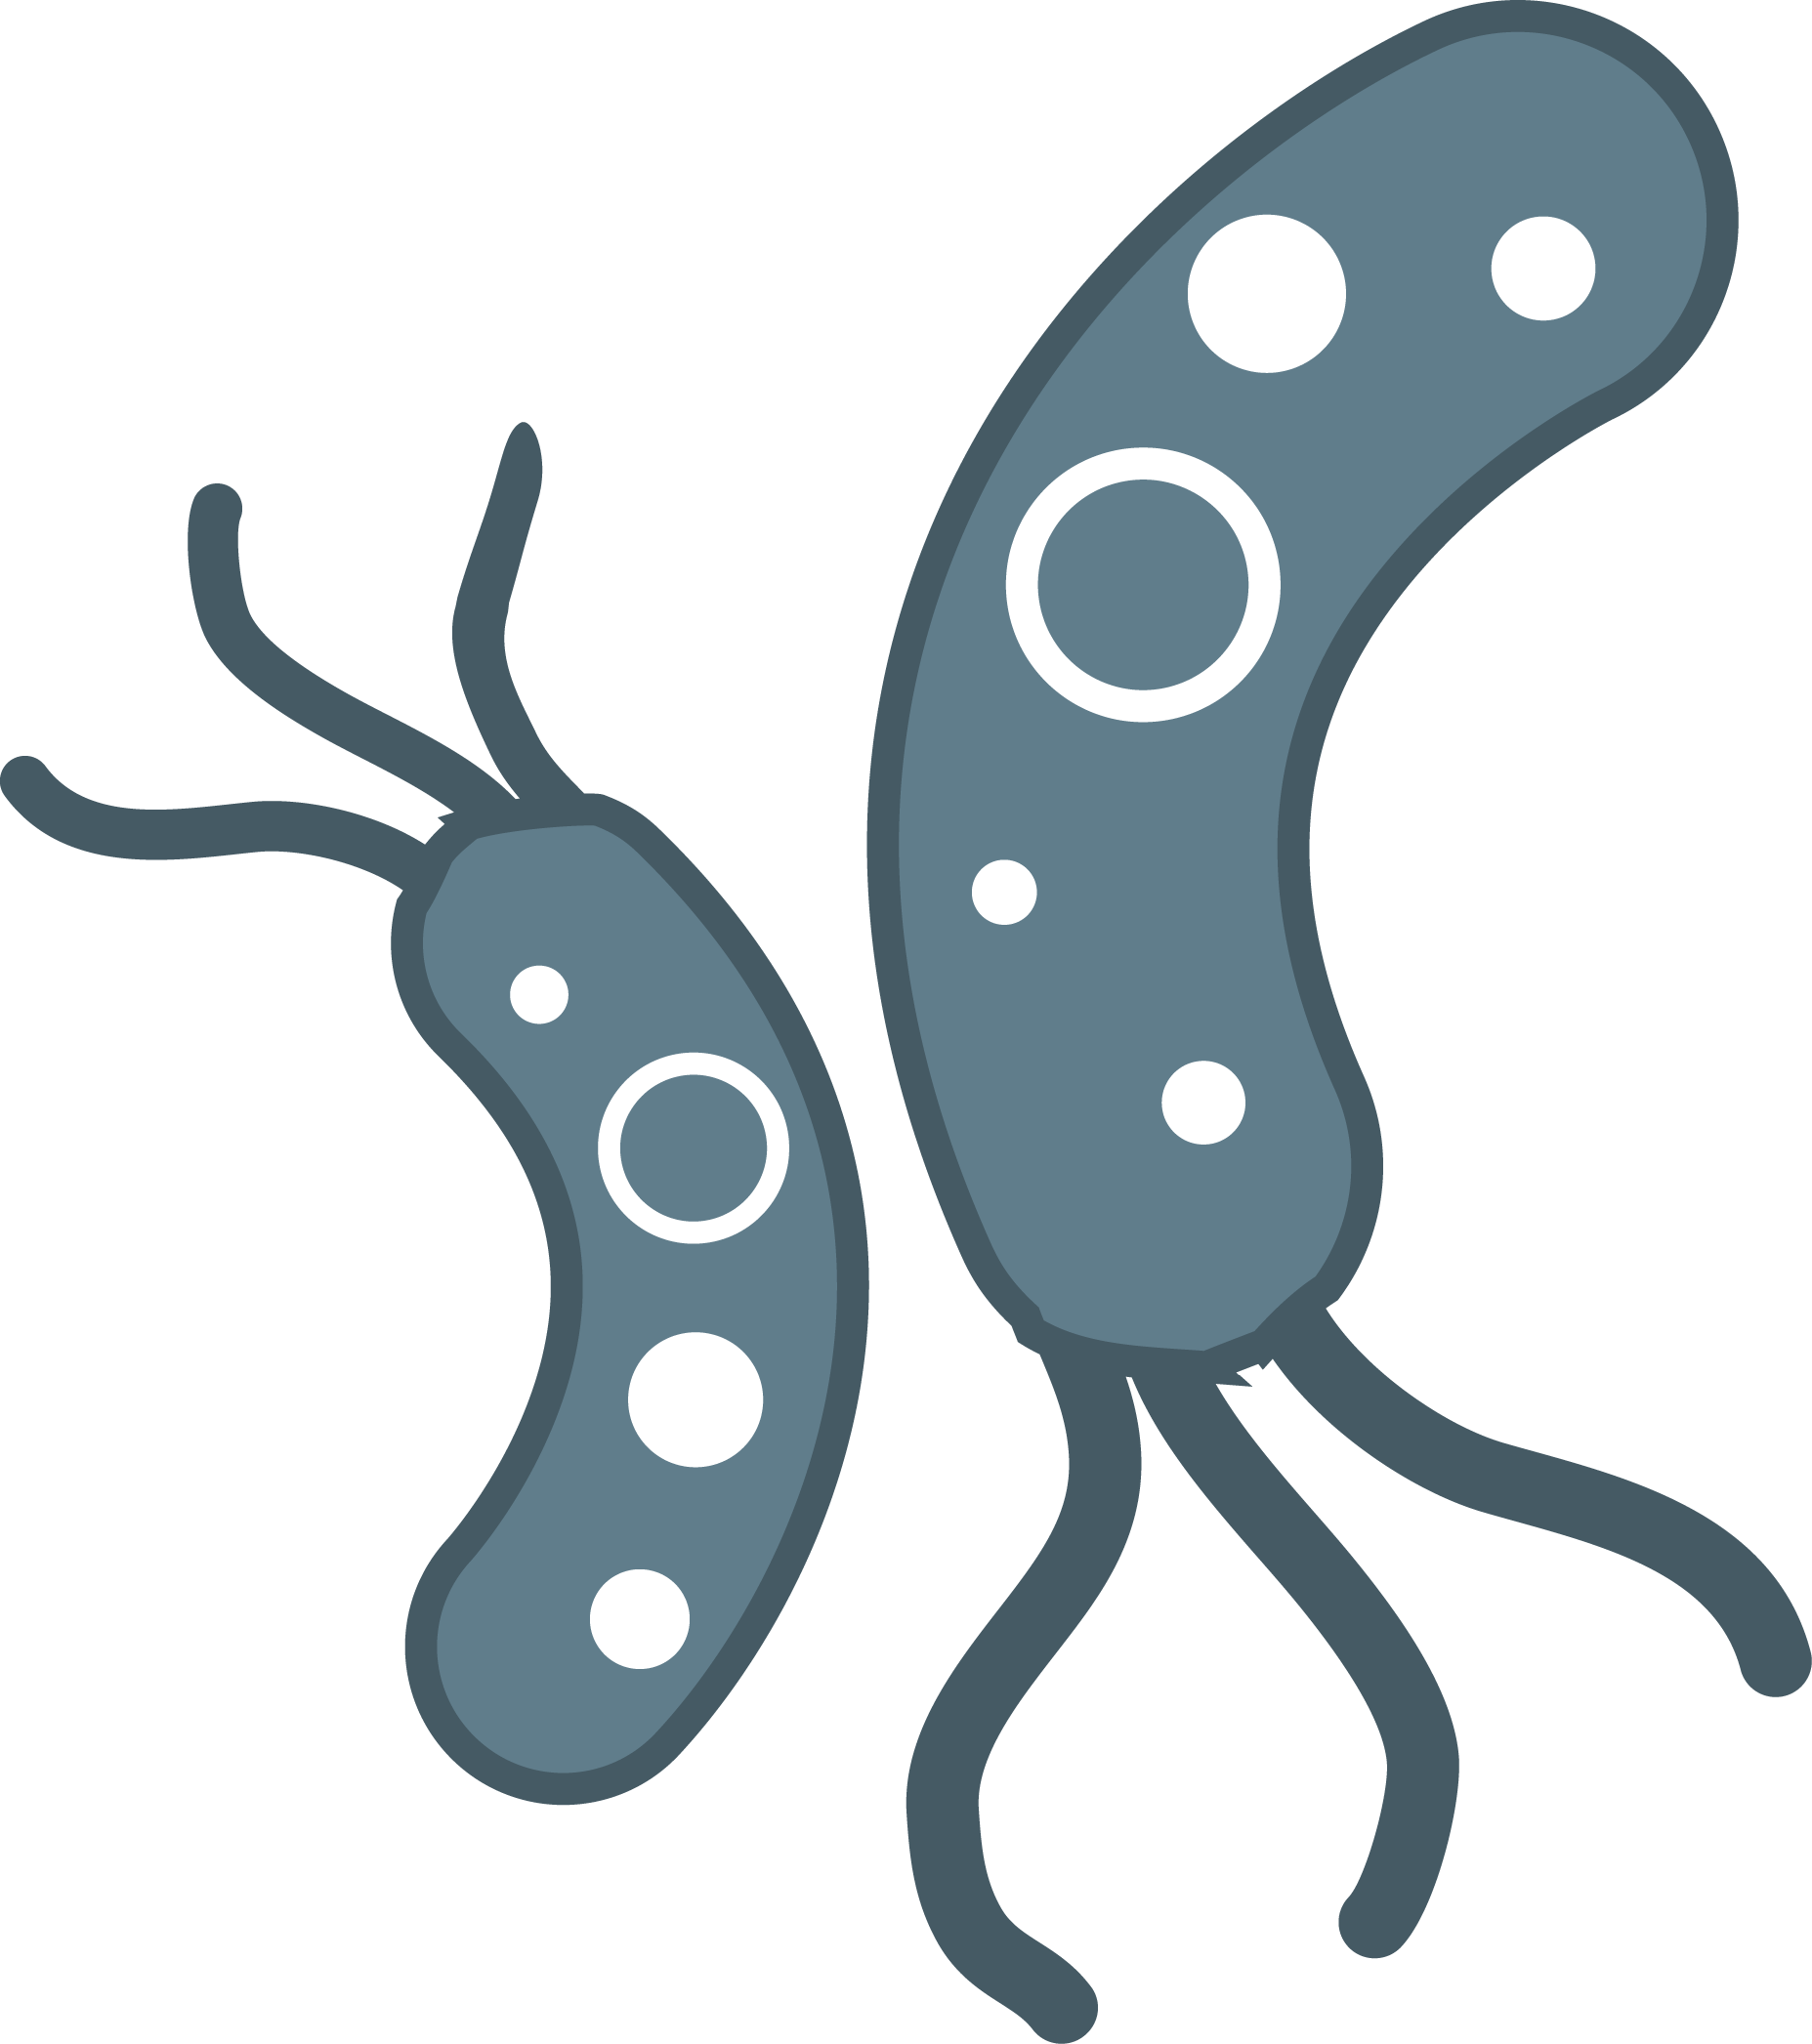 Bacteria png. Transparent images all file